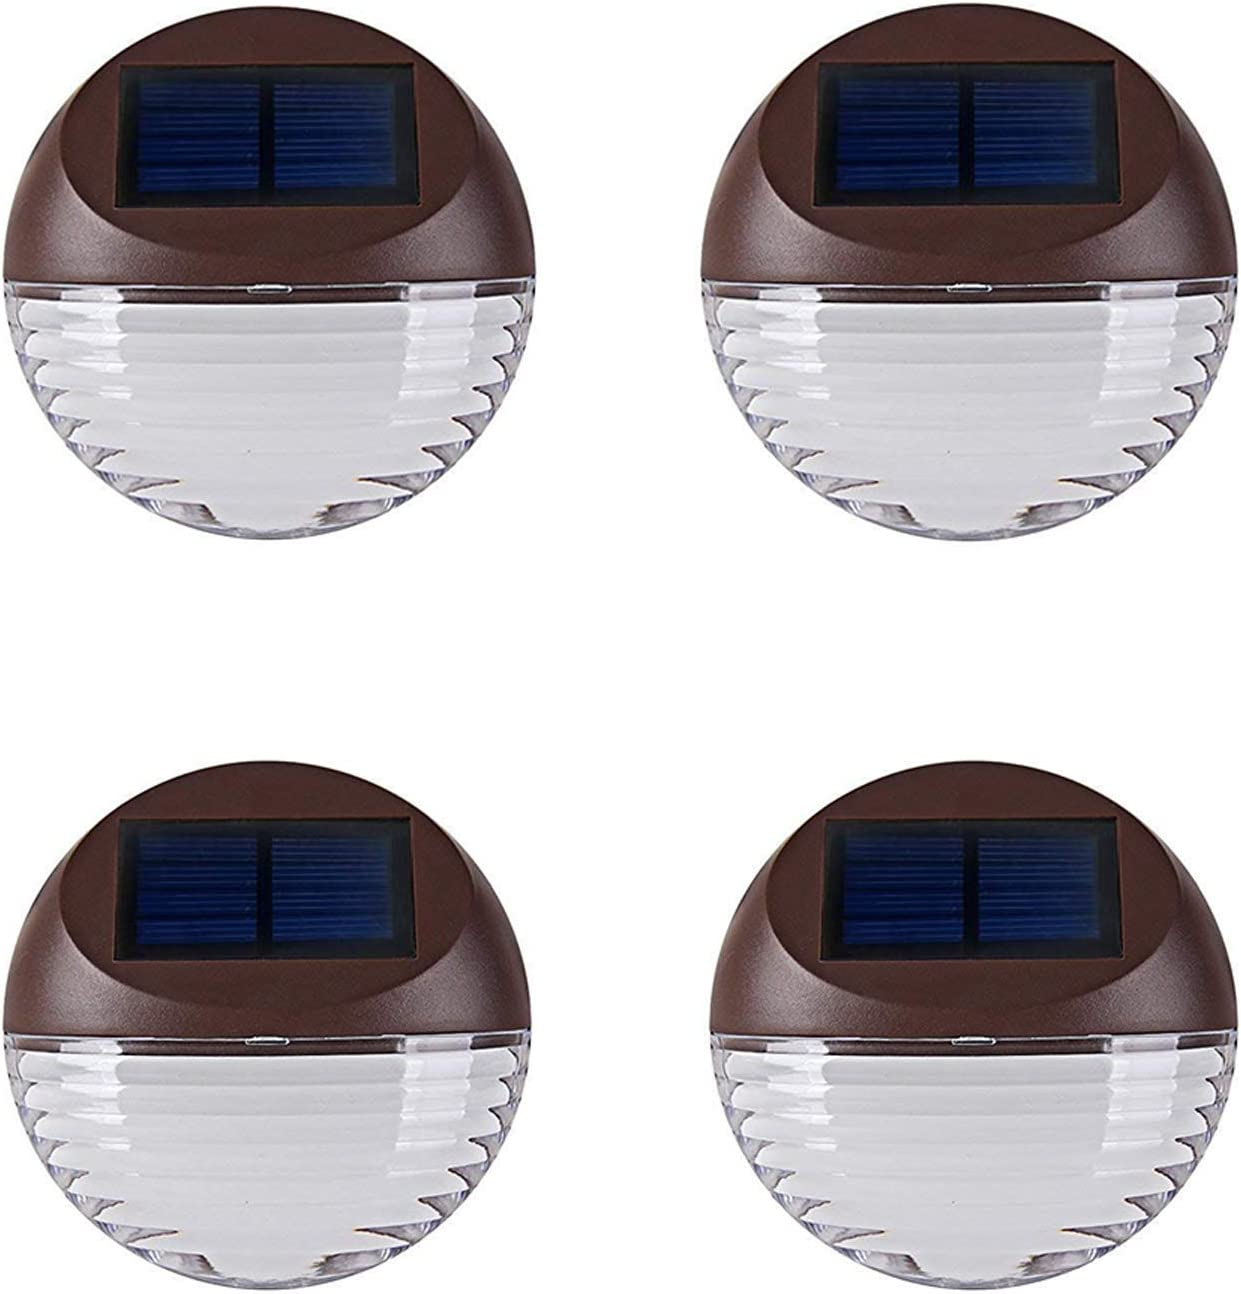 Al sold out. Solar Deck Beauty products Lighting Wall Lights Pack - Outdoor 4 Wireless